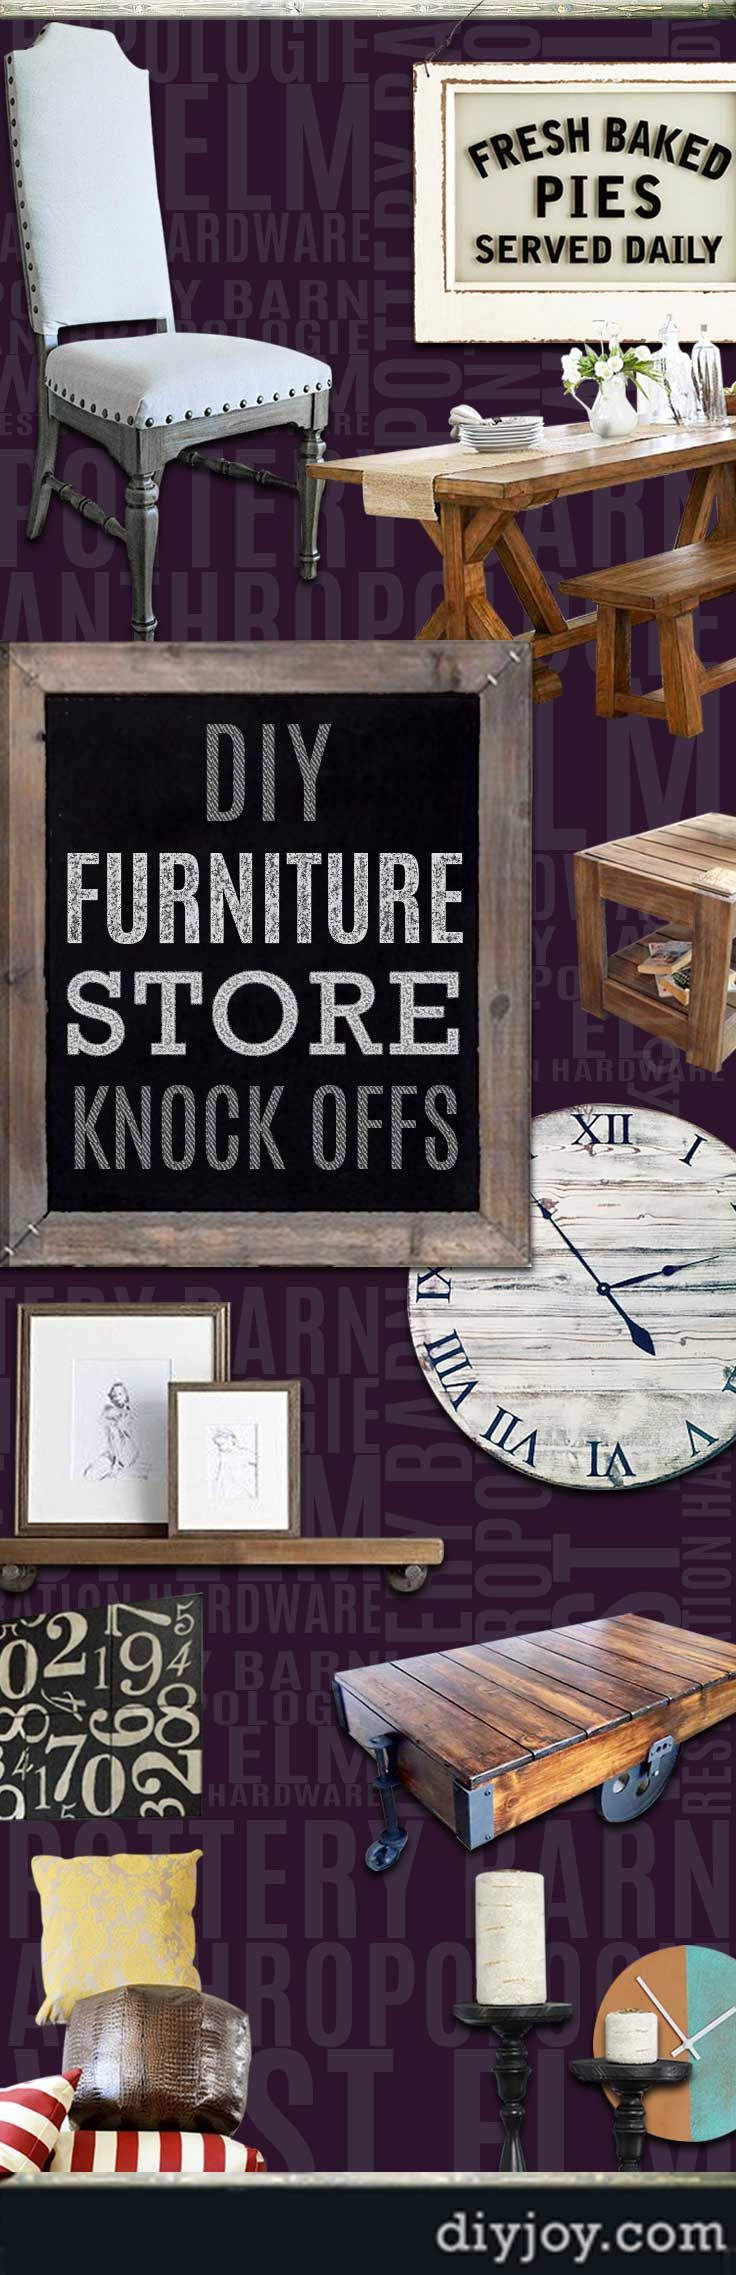 52 incredible diy furniture store knock offs pinterest furniture diy furniture ideas and projects do it yourself designer store knockoffs dyi furniture projects inspired by pottery barn restoration hardware solutioingenieria Images